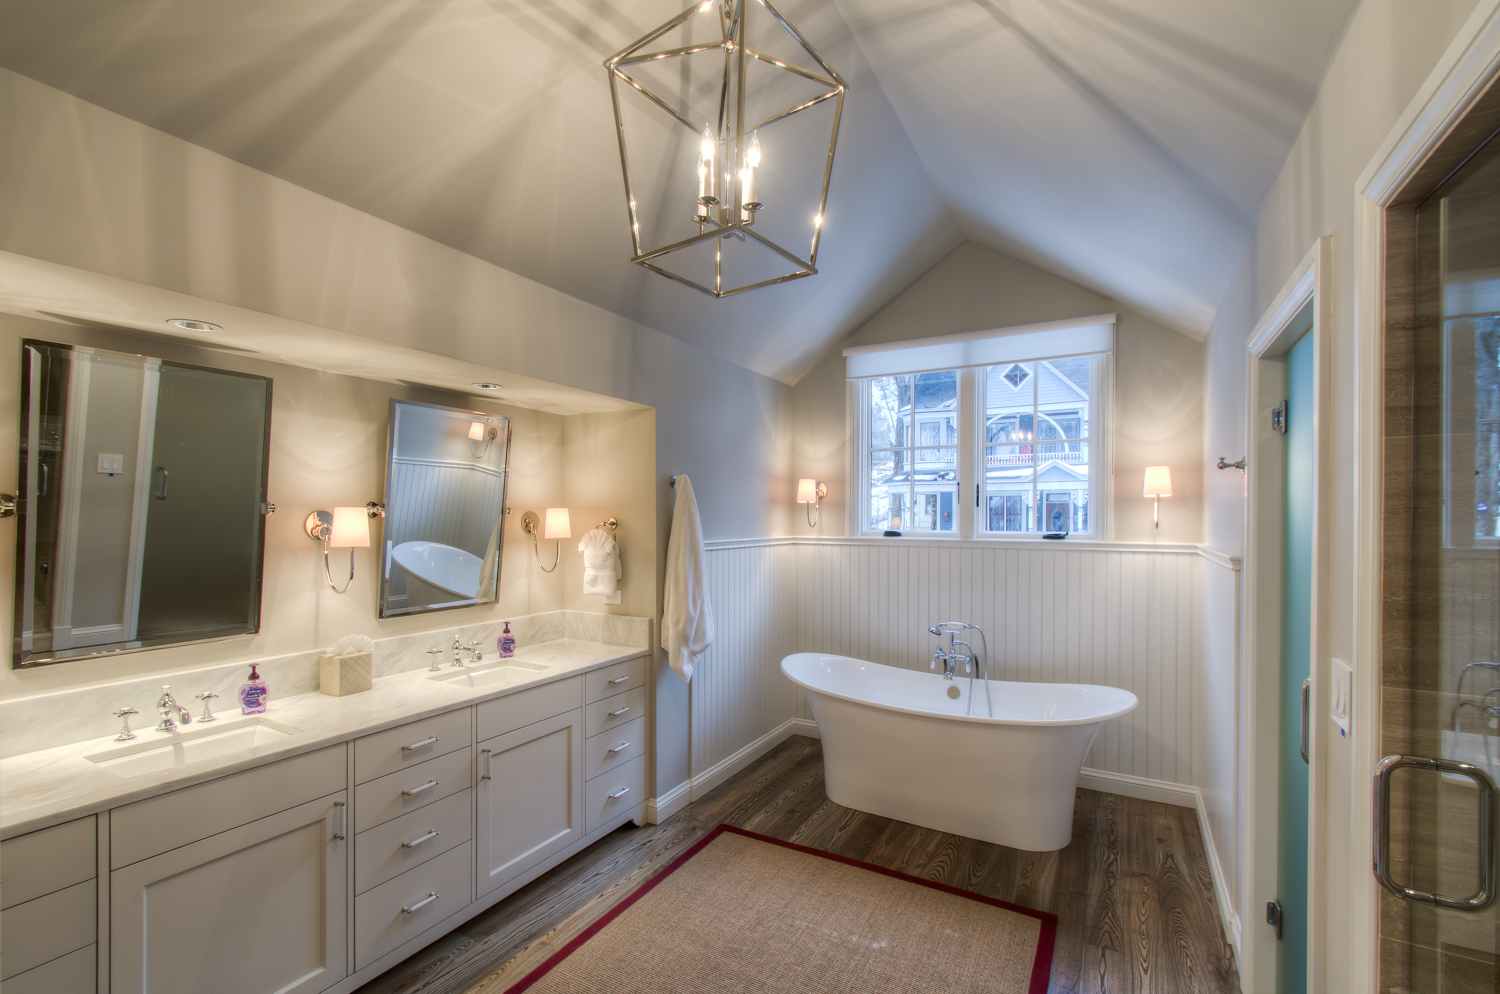 Master Bathroom with Dual Vanity, Soaking Tub, and Walk-in Shower